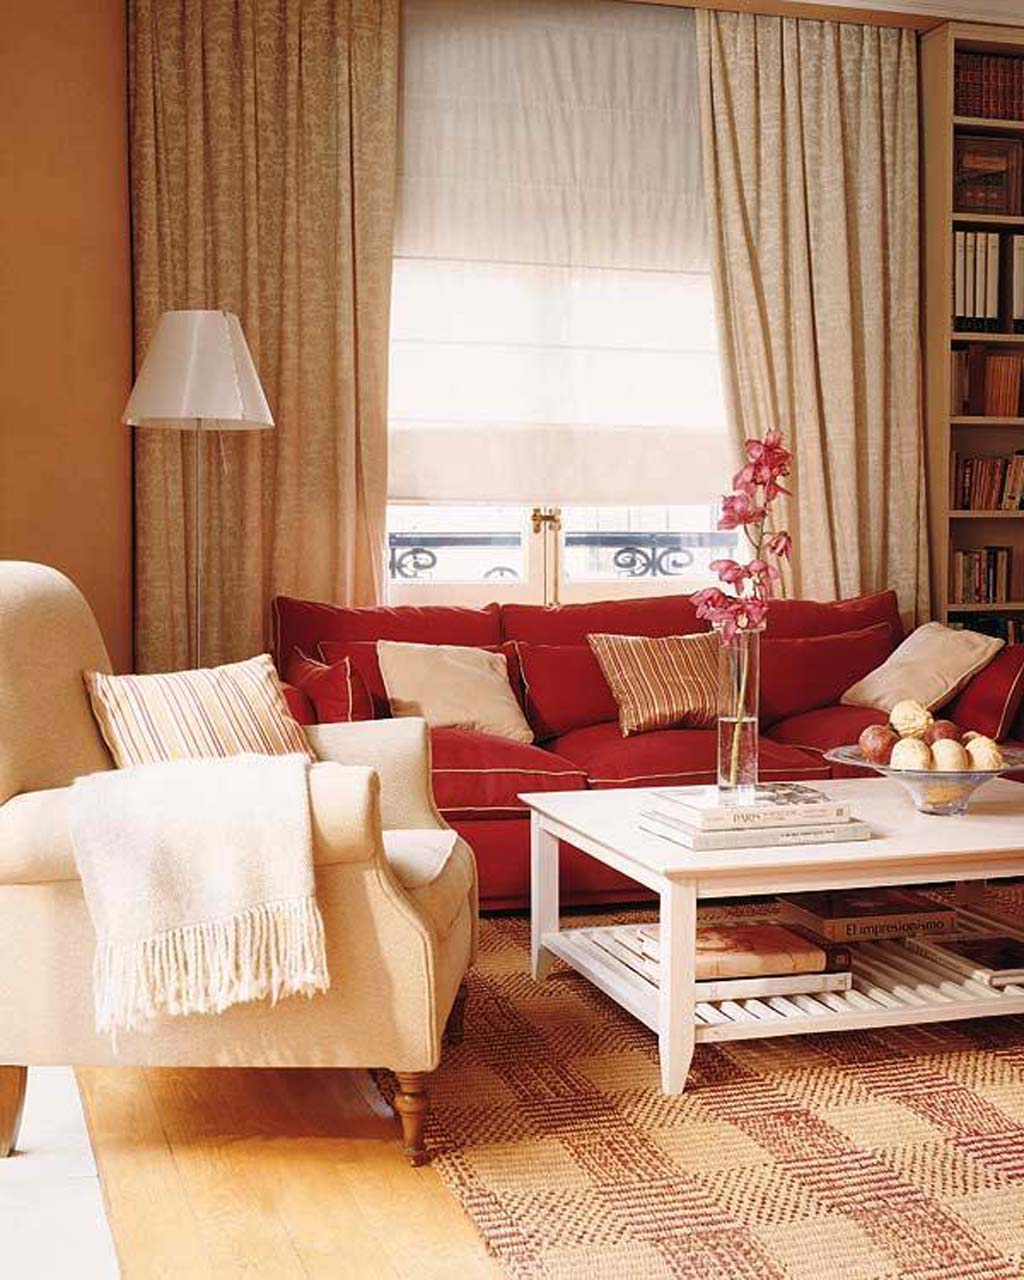 30 Amazing Small Spaces Living Room Design Ideas